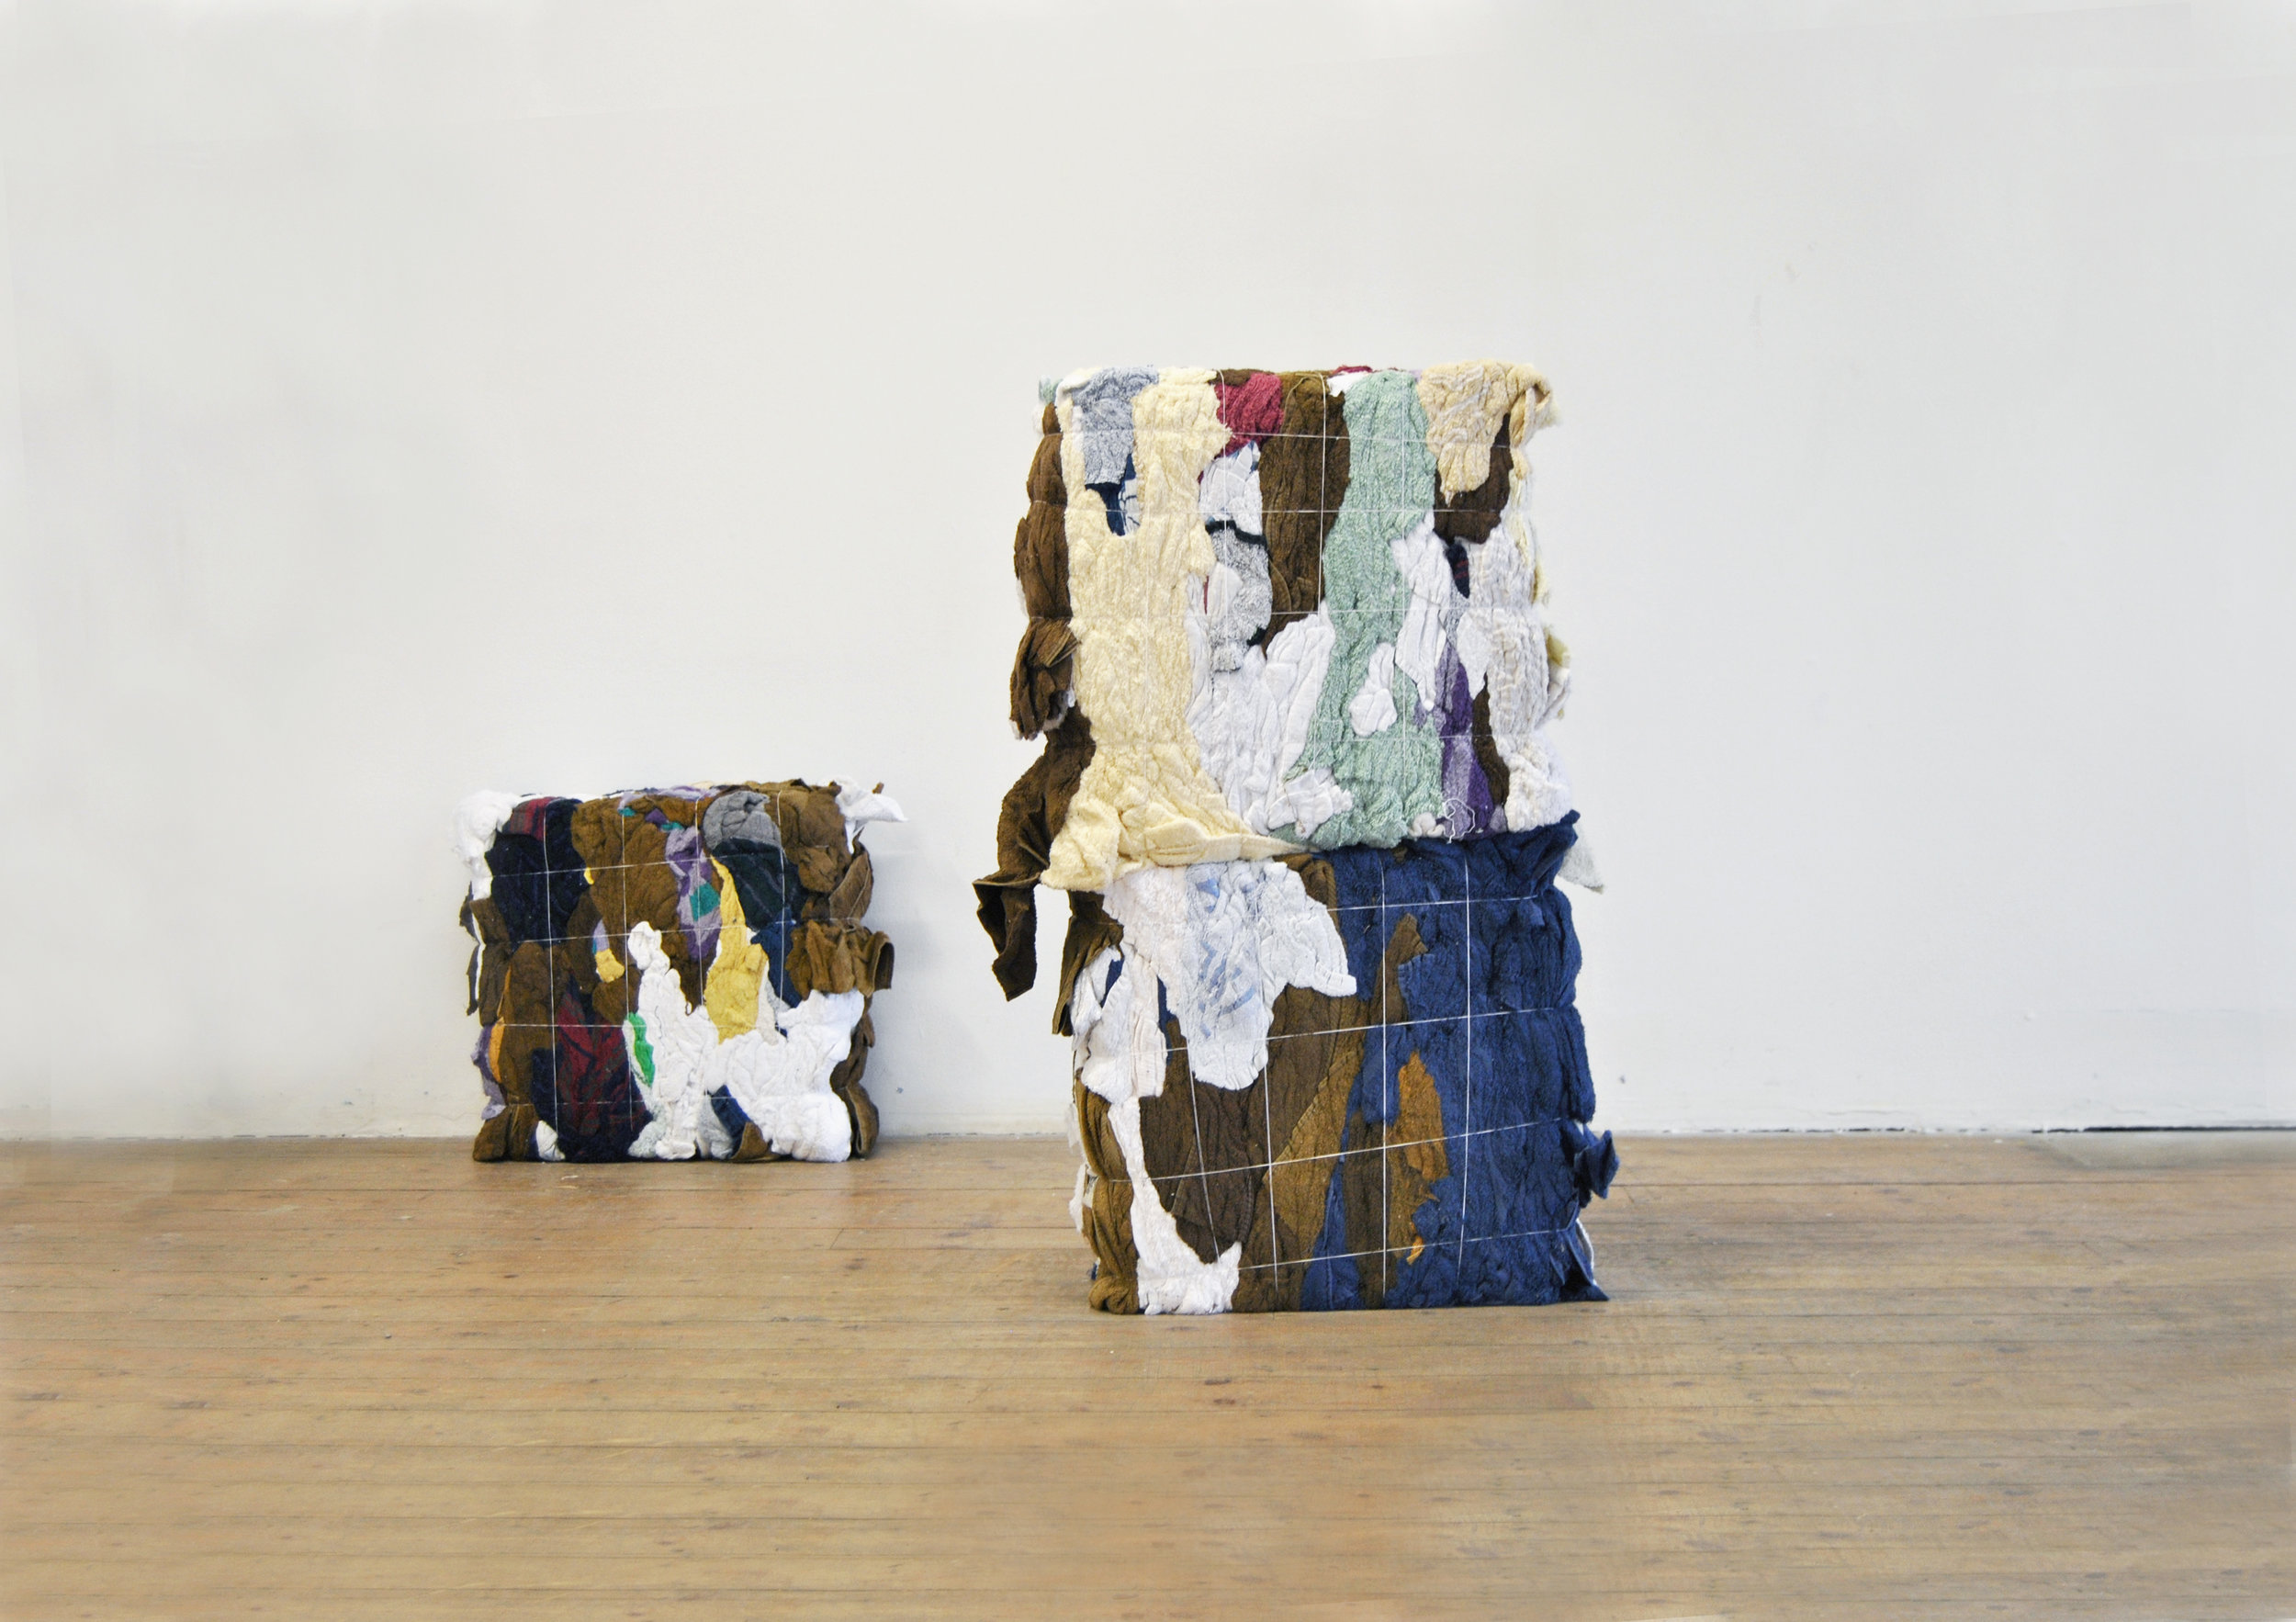 Rag Bales No. 1 - 3, Rags, Thread, Installed At 'Soft Rocks: New Works By Lydia Brockless & Sophie Giller', Lady Beck, Leeds, June 2016